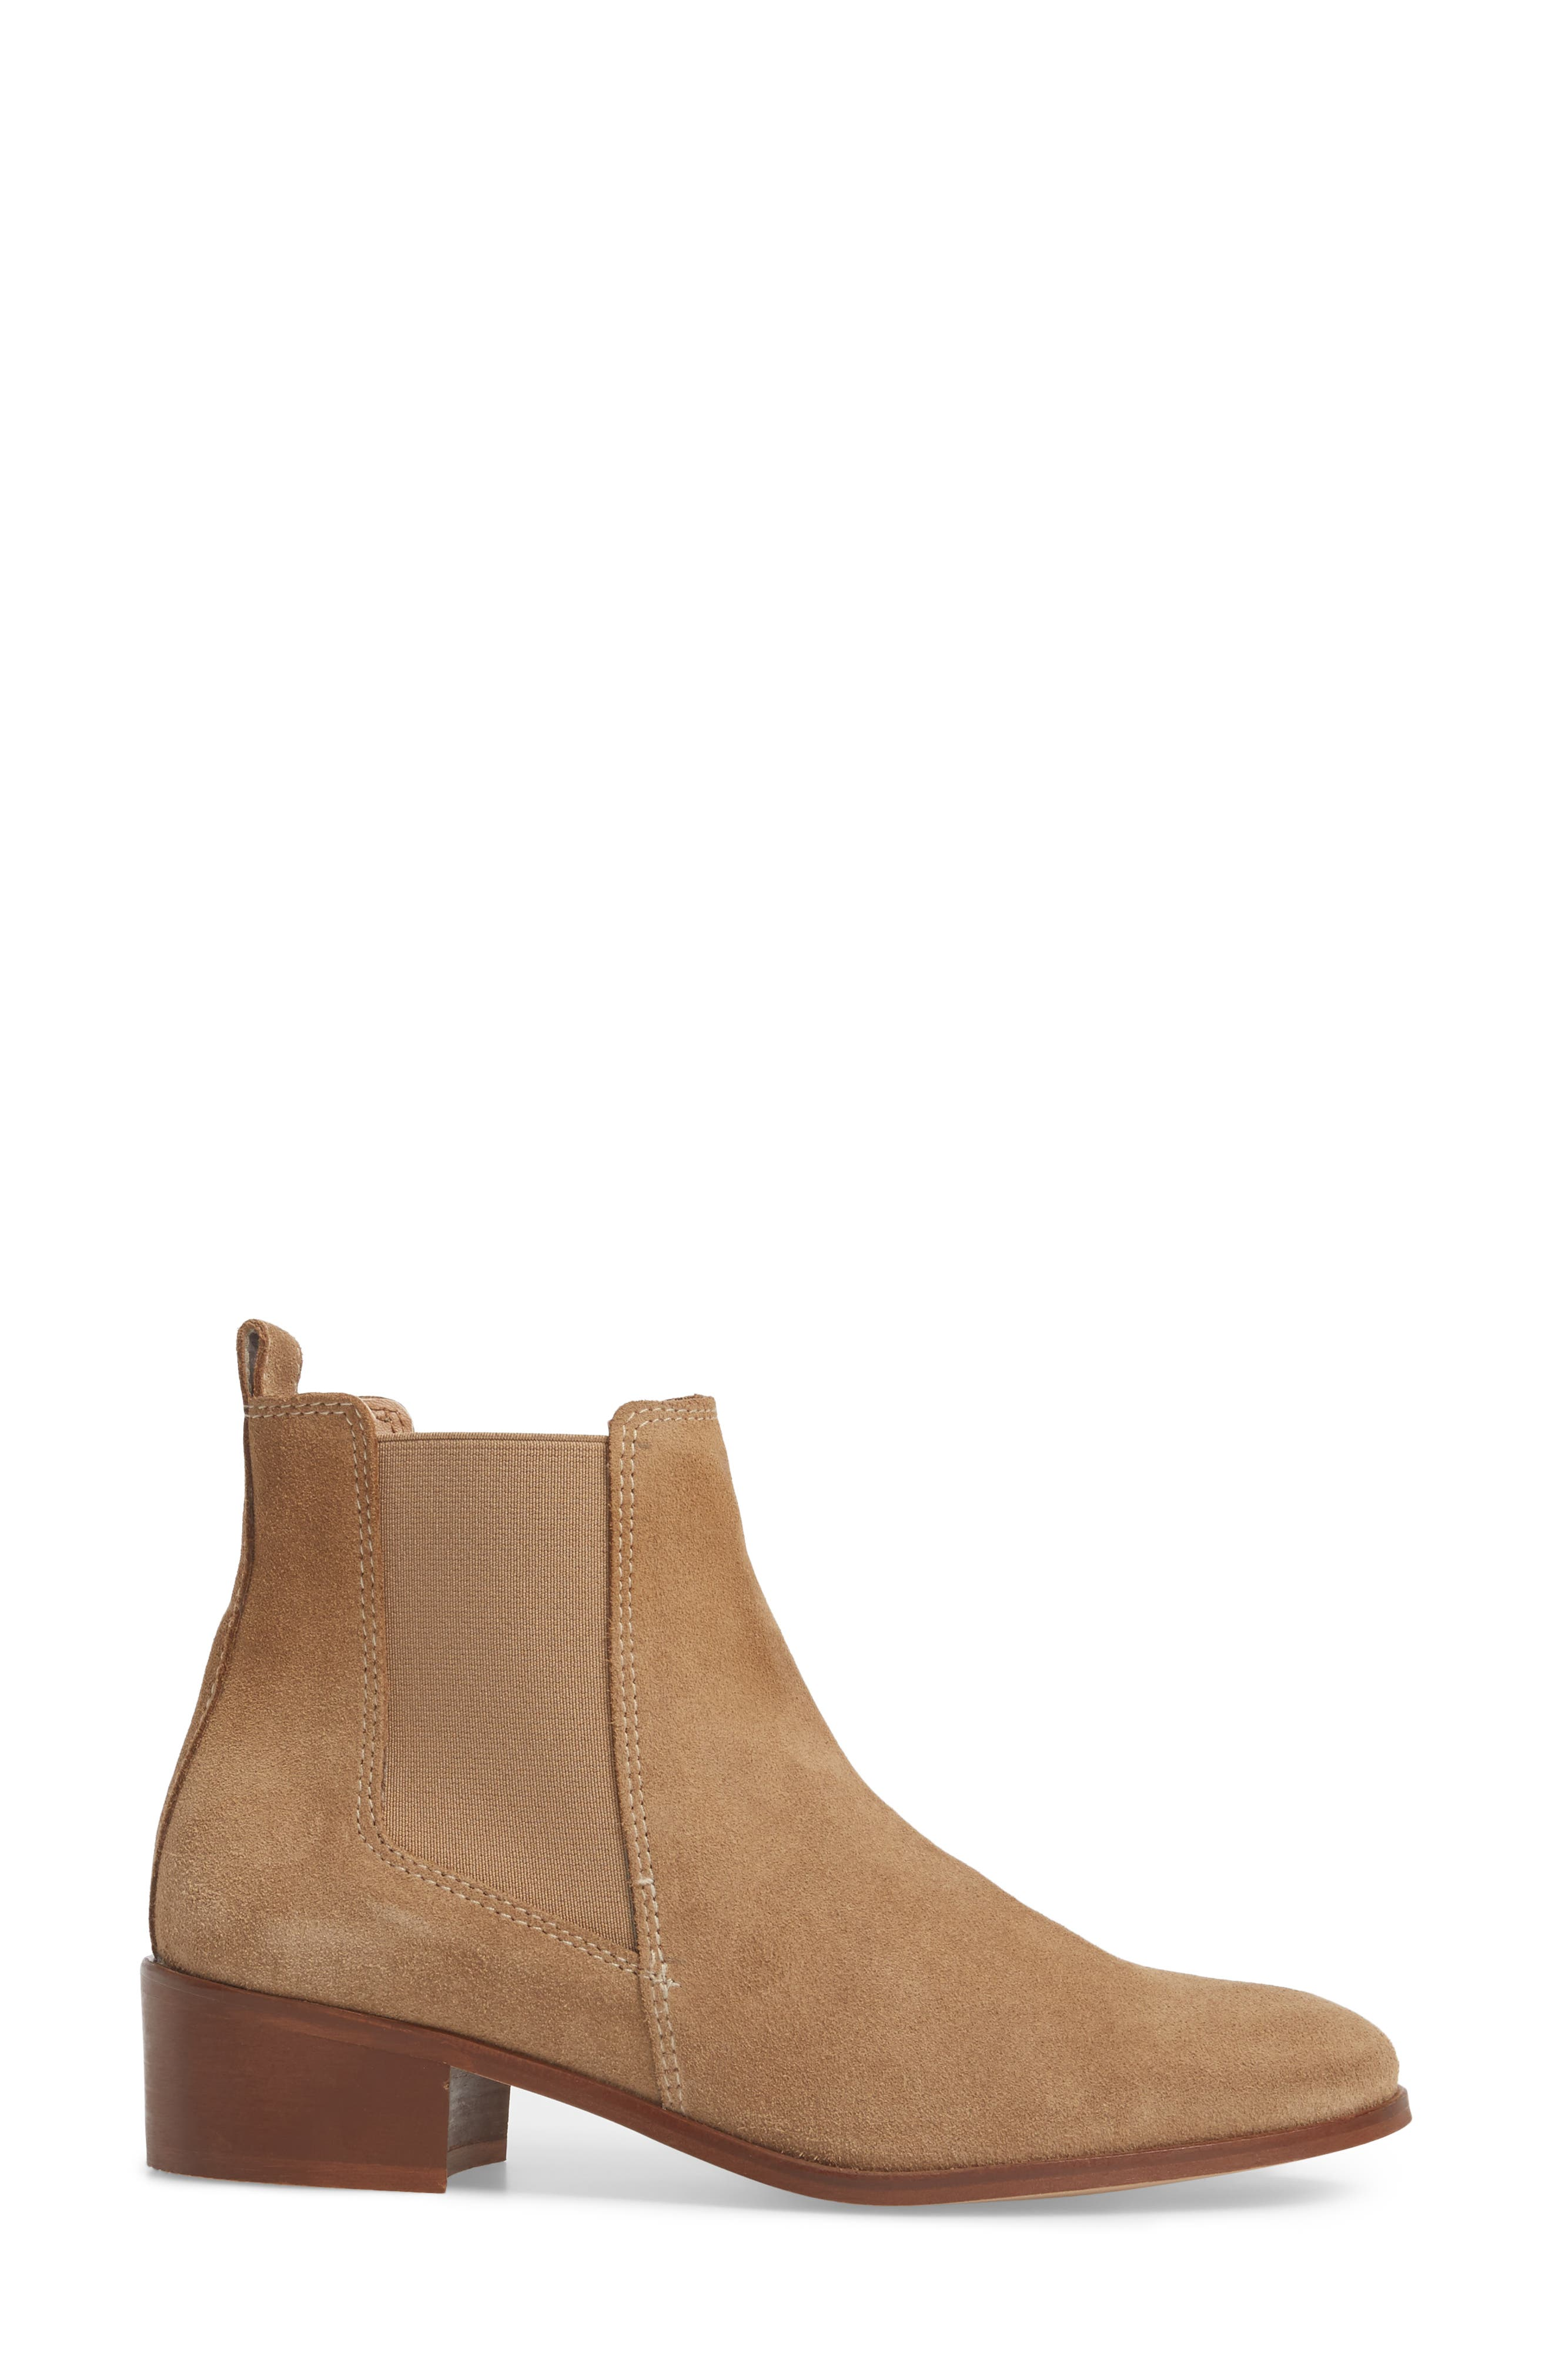 Dover Chelsea Bootie,                             Alternate thumbnail 3, color,                             Taupe Suede